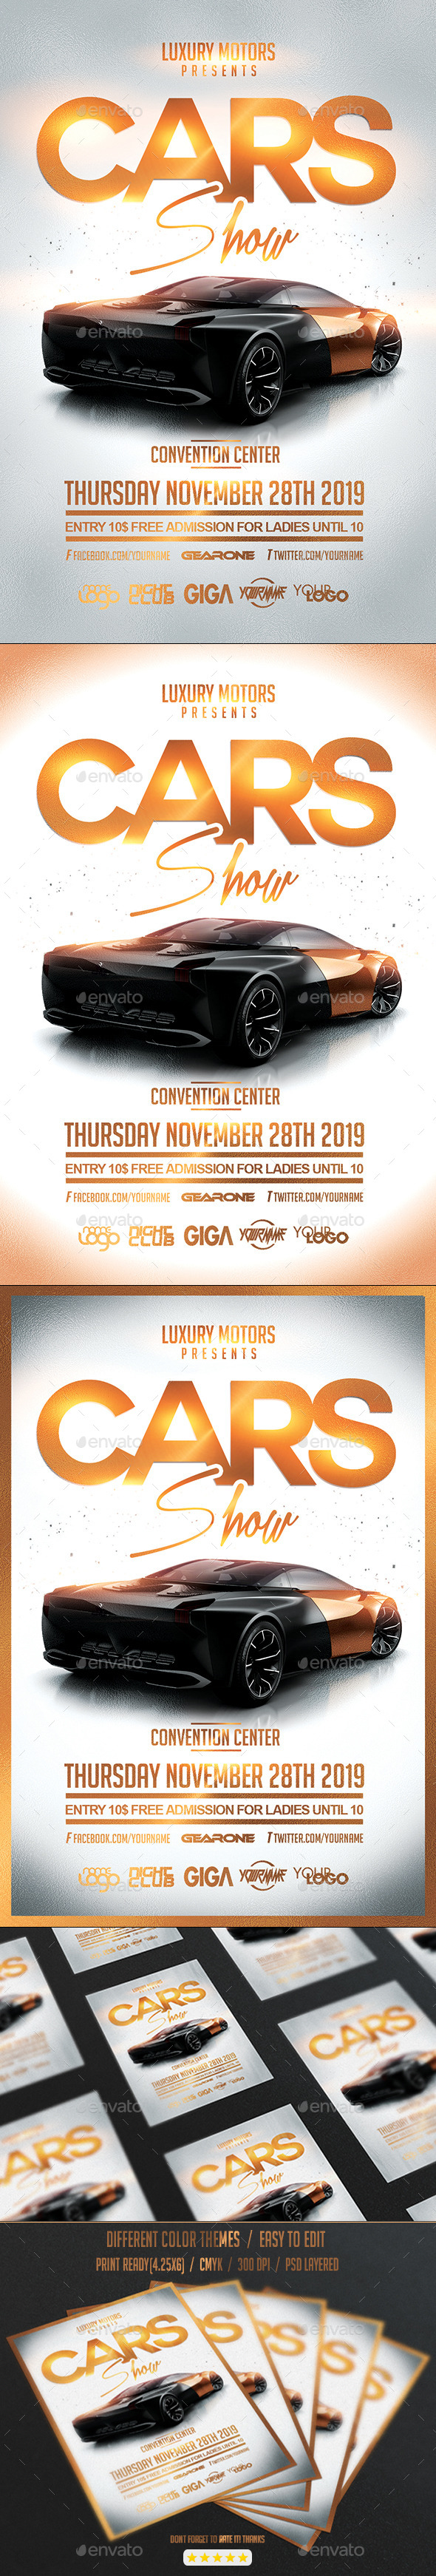 Cars Show | Convention Flyer PSD Template - Events Flyers